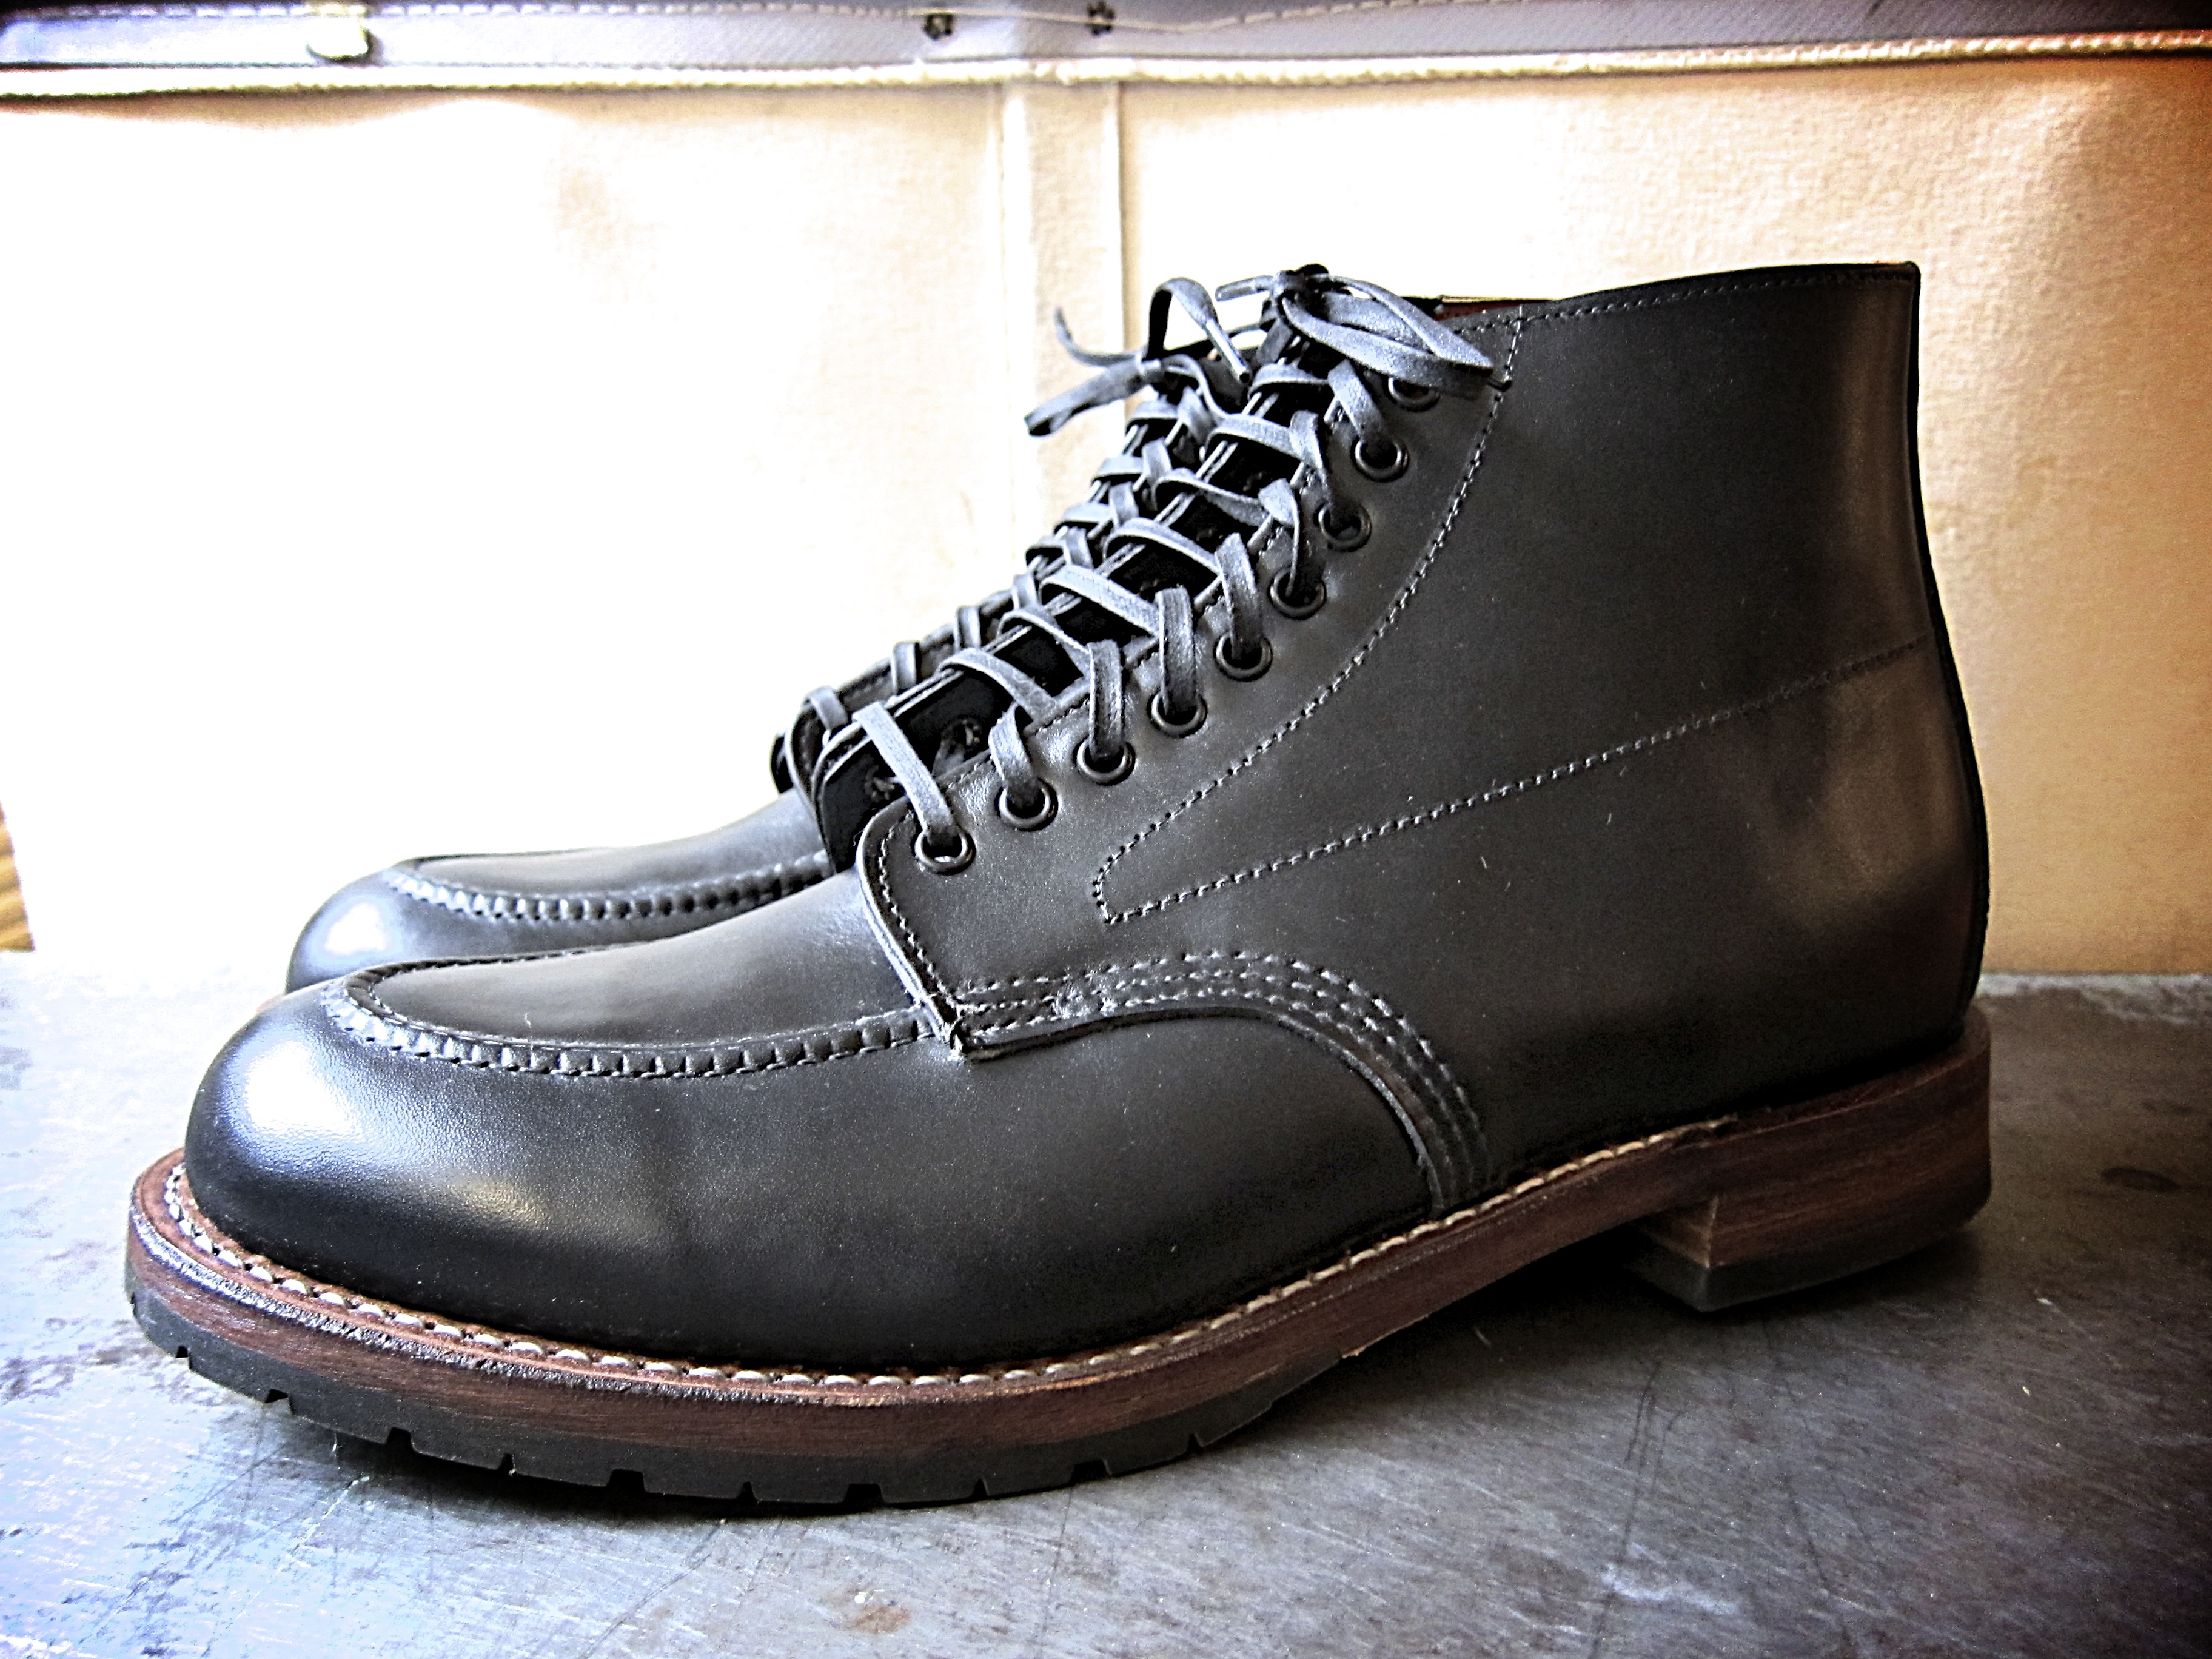 Red wing boots wikipedia english